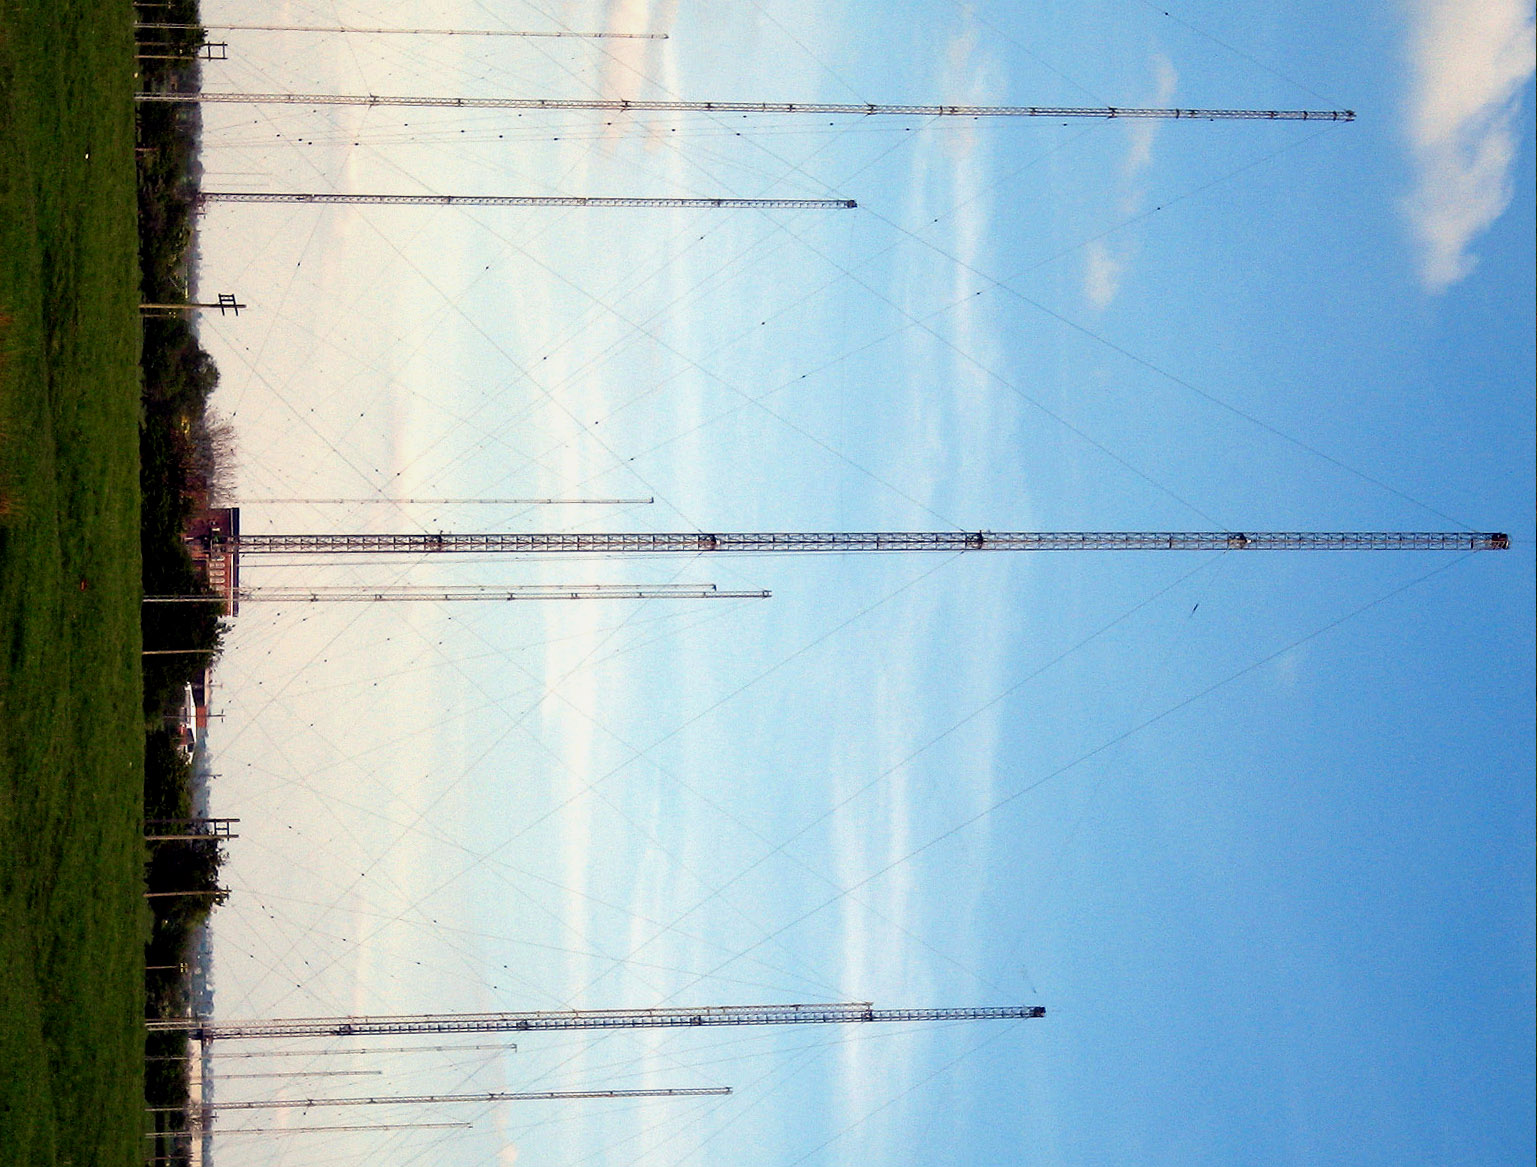 Royalty Free Stock Image Antenna Metal Symbol Isolated White Image32748936 likewise Cell Phone Tower Diagram additionally Radio masts and towers as well Suburban Spotlight Jamie Checks Out Eden Prairie likewise New Emergency Services  work Delays Could Cost Millions. on tower radio network